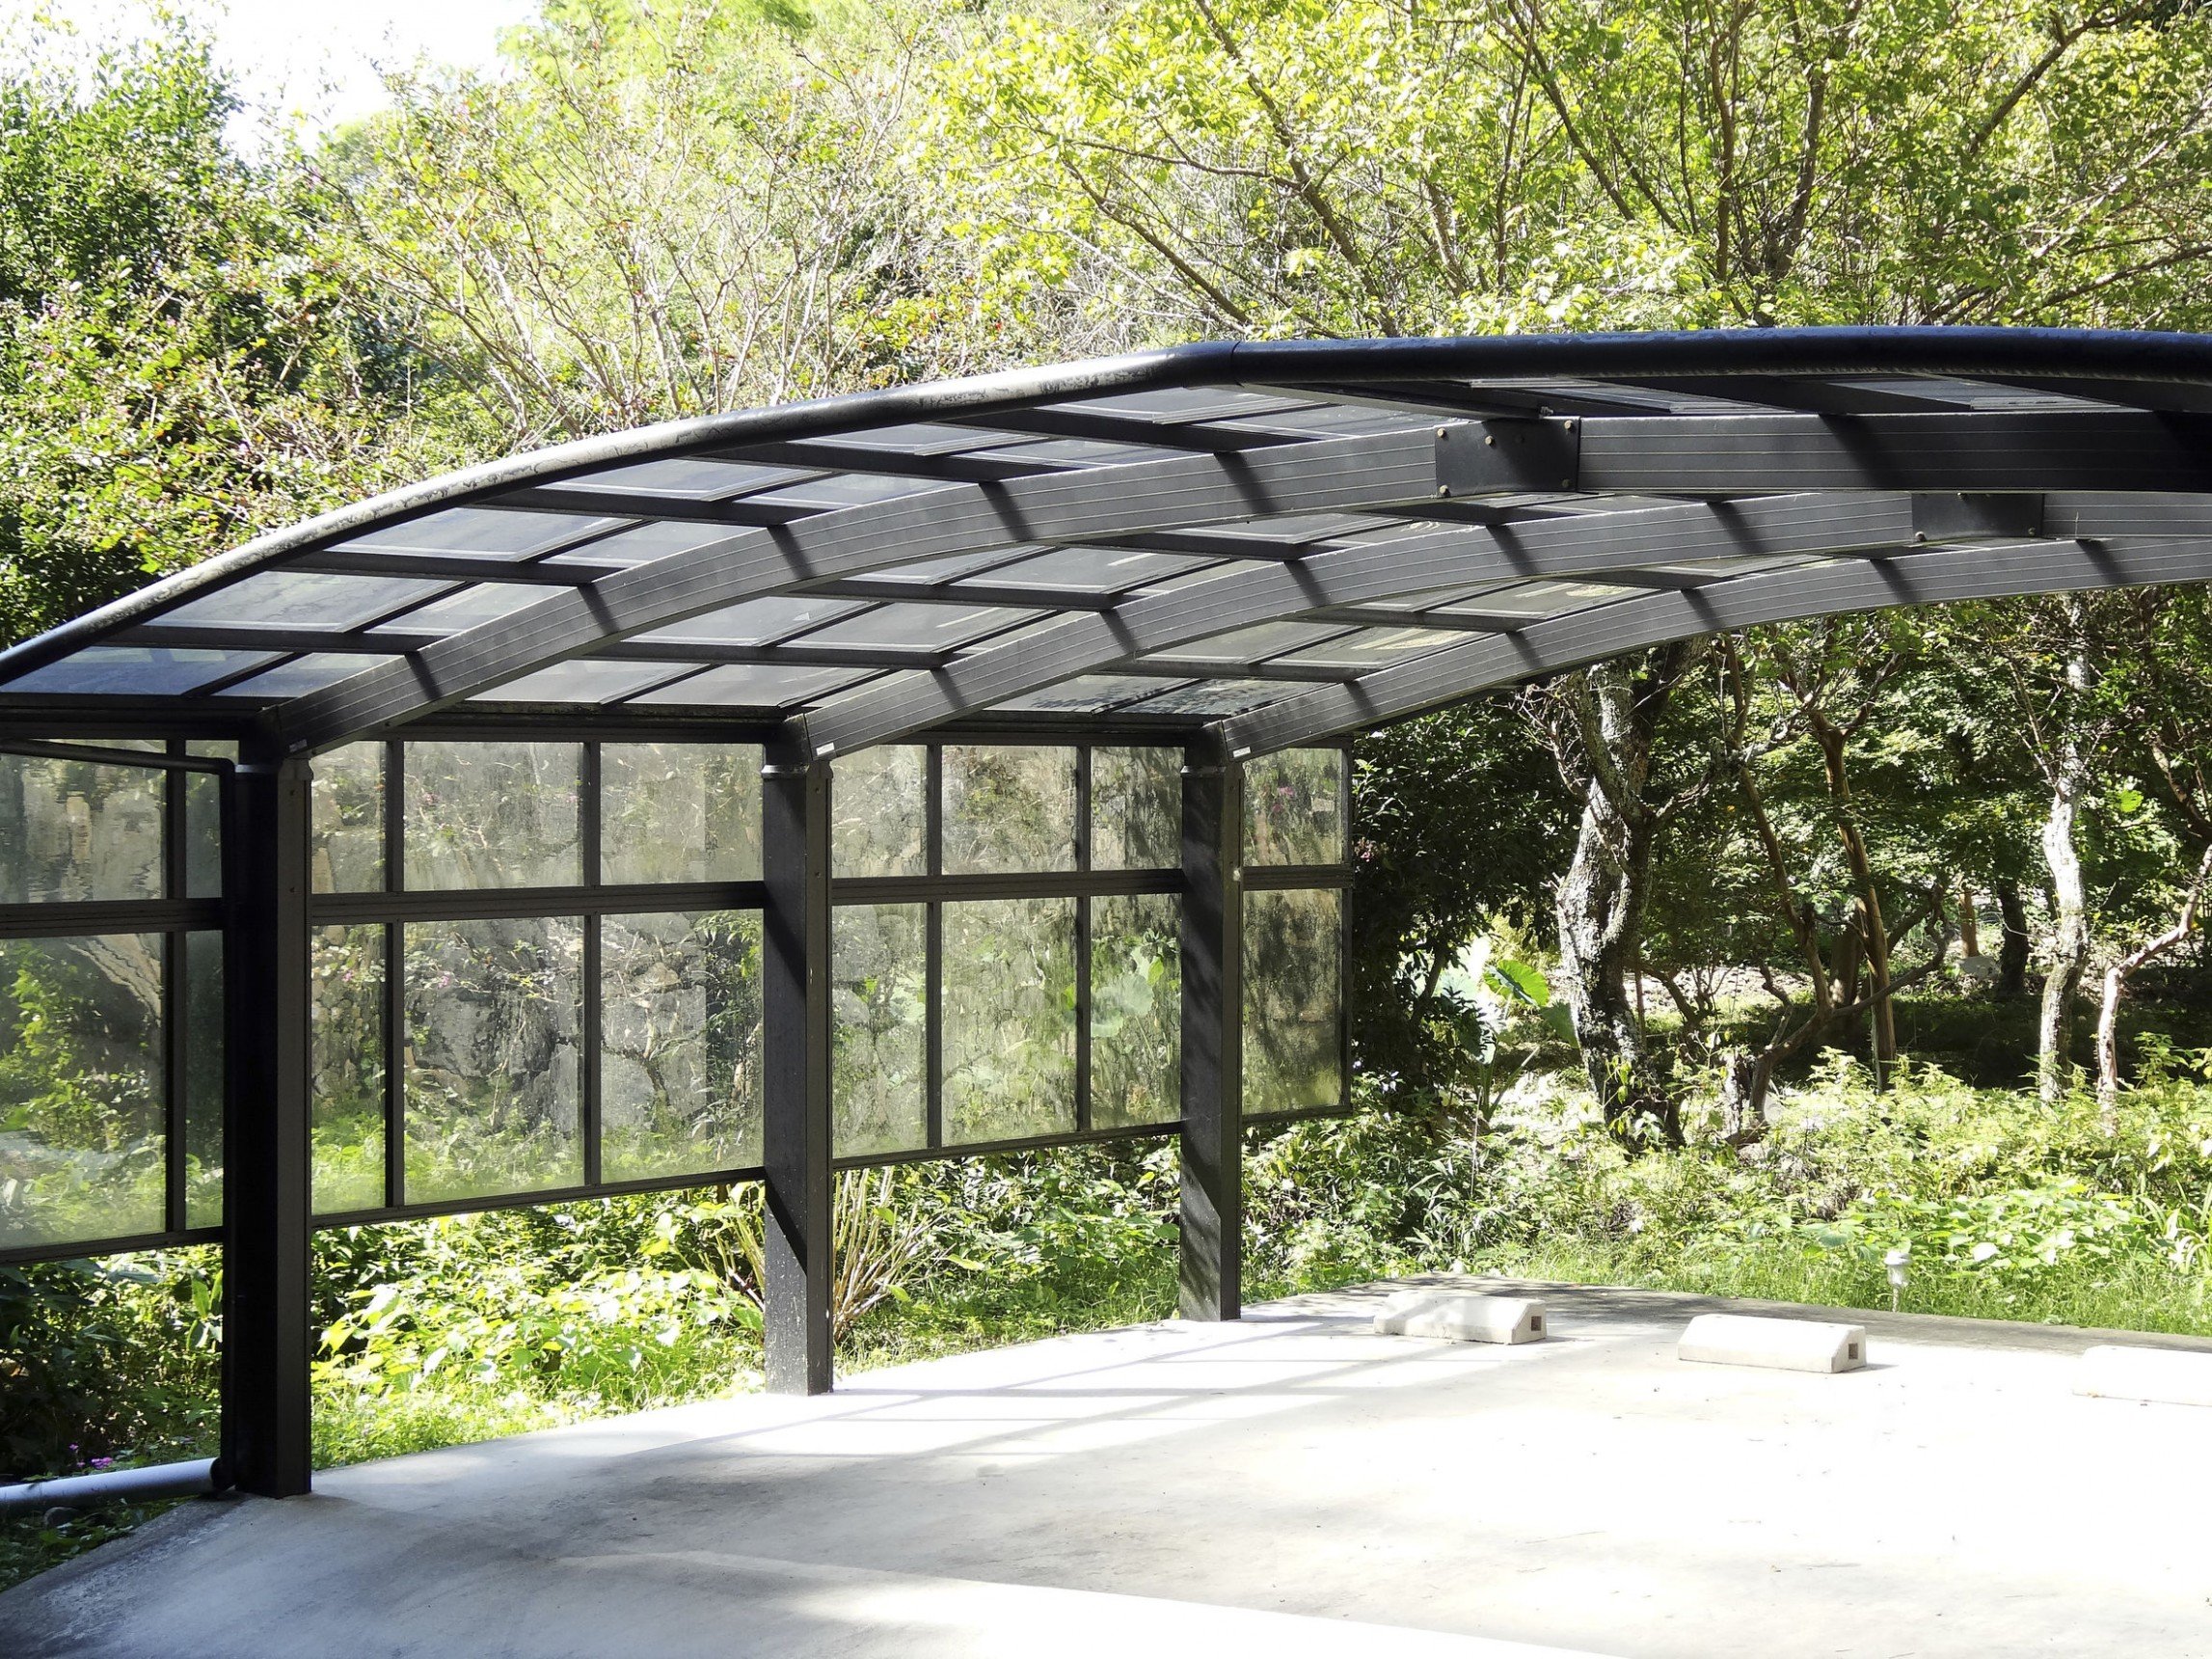 How I Successfuly Organized My Very Own Carport Cover | carport cover